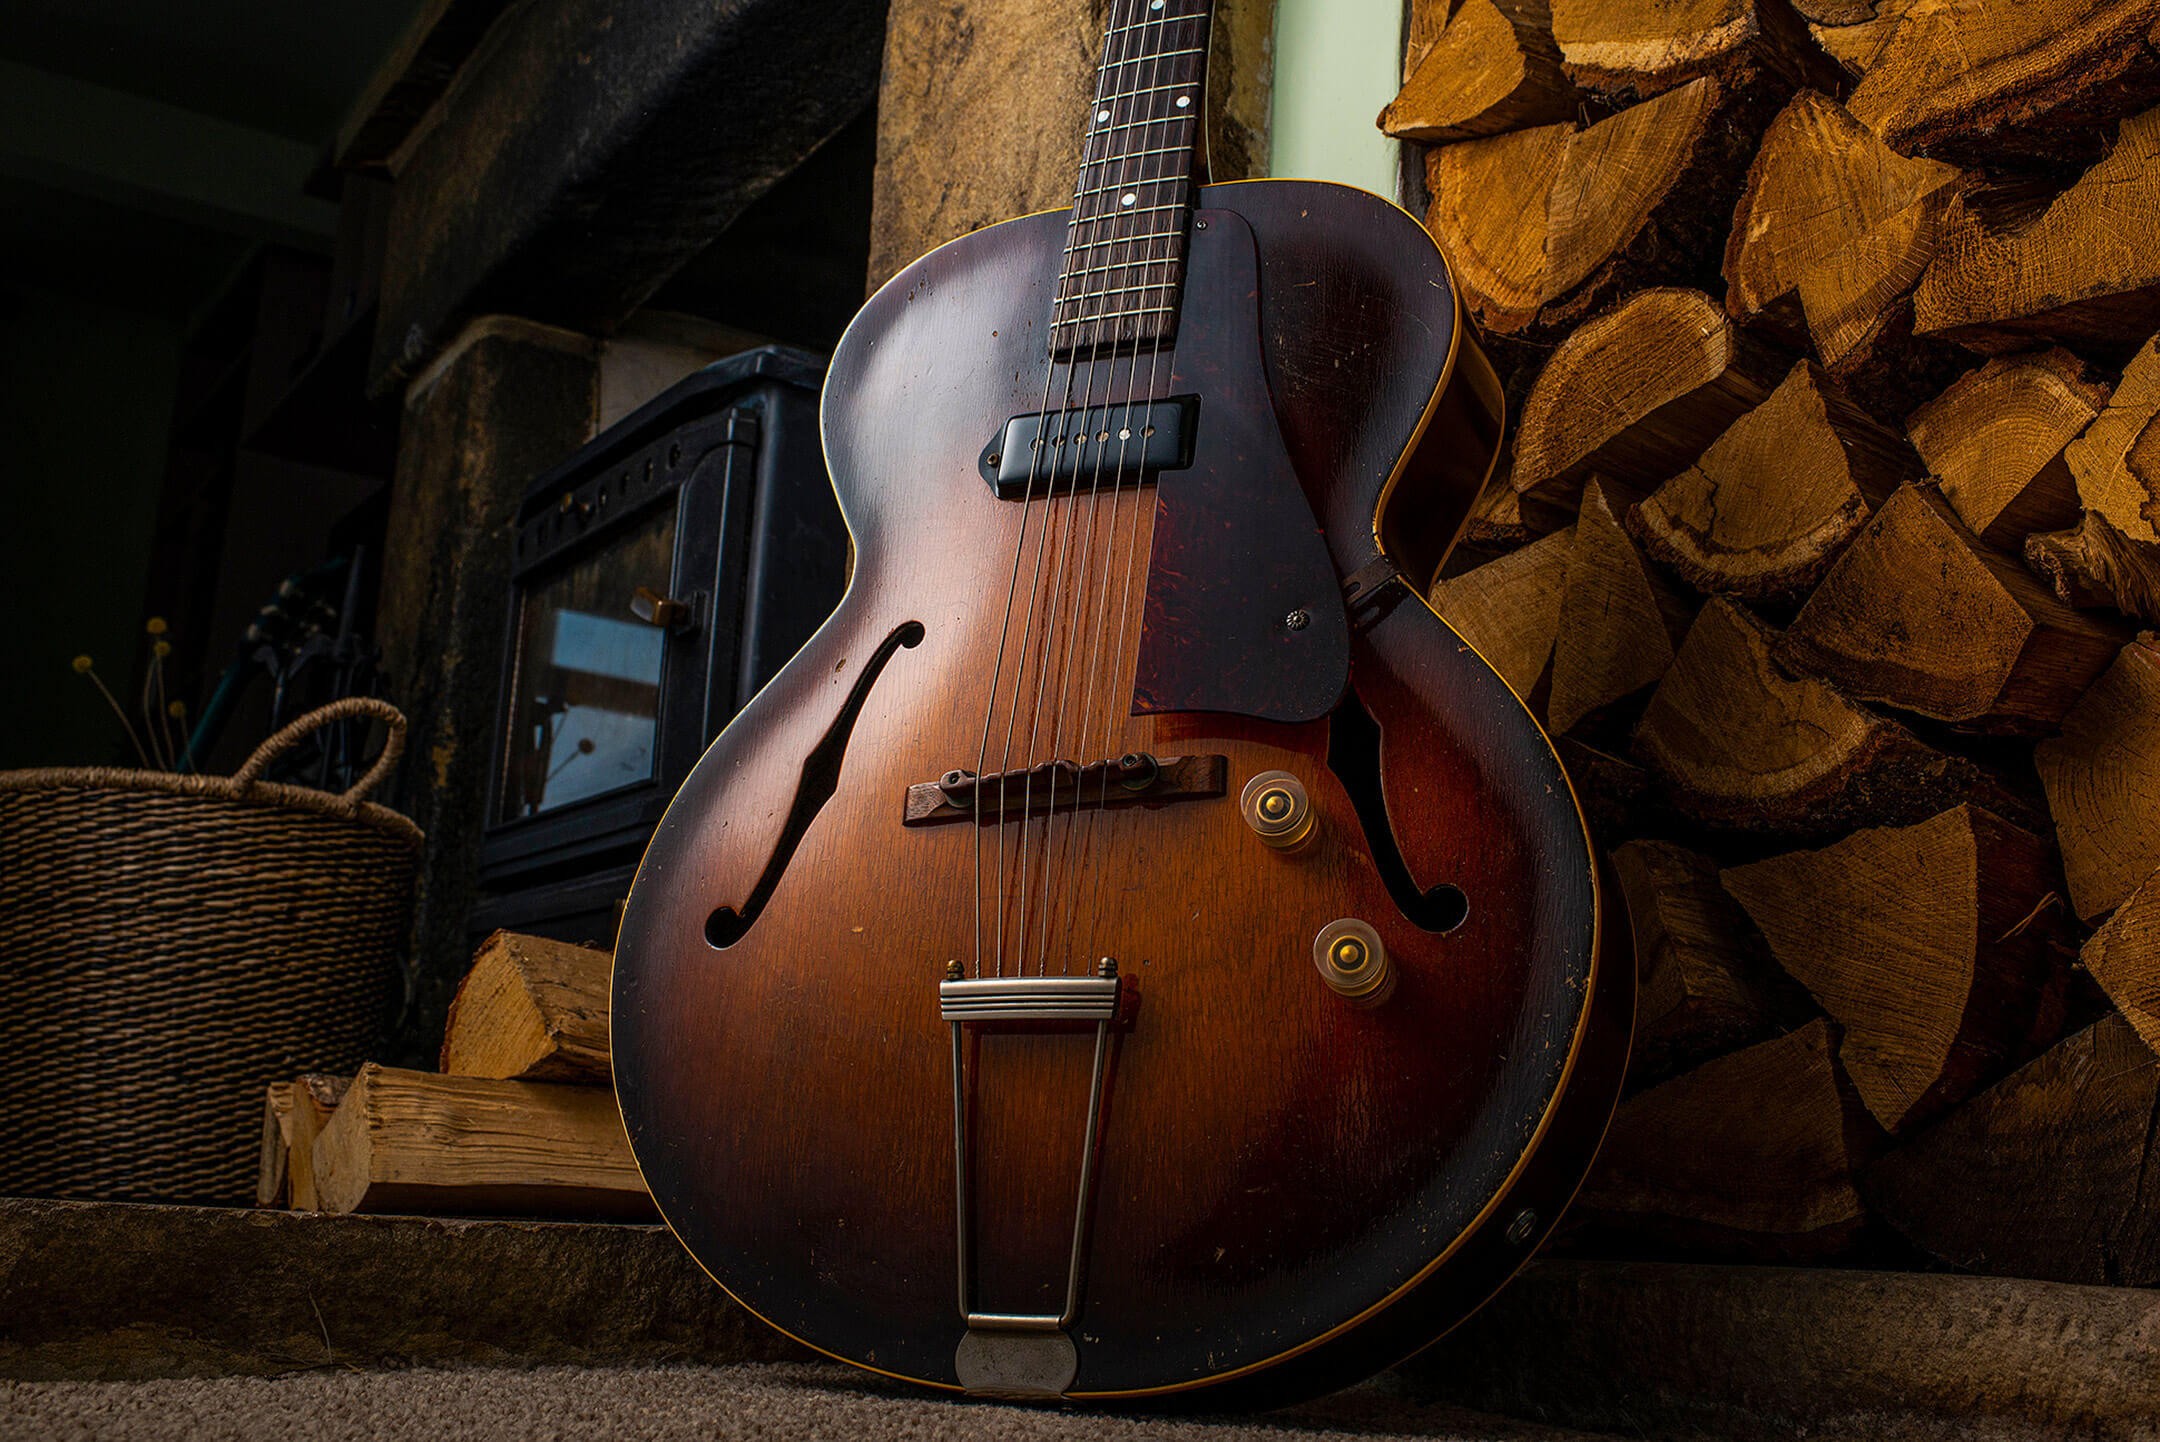 Marc Ransley's 1947 Gibson ES-125 Archtop